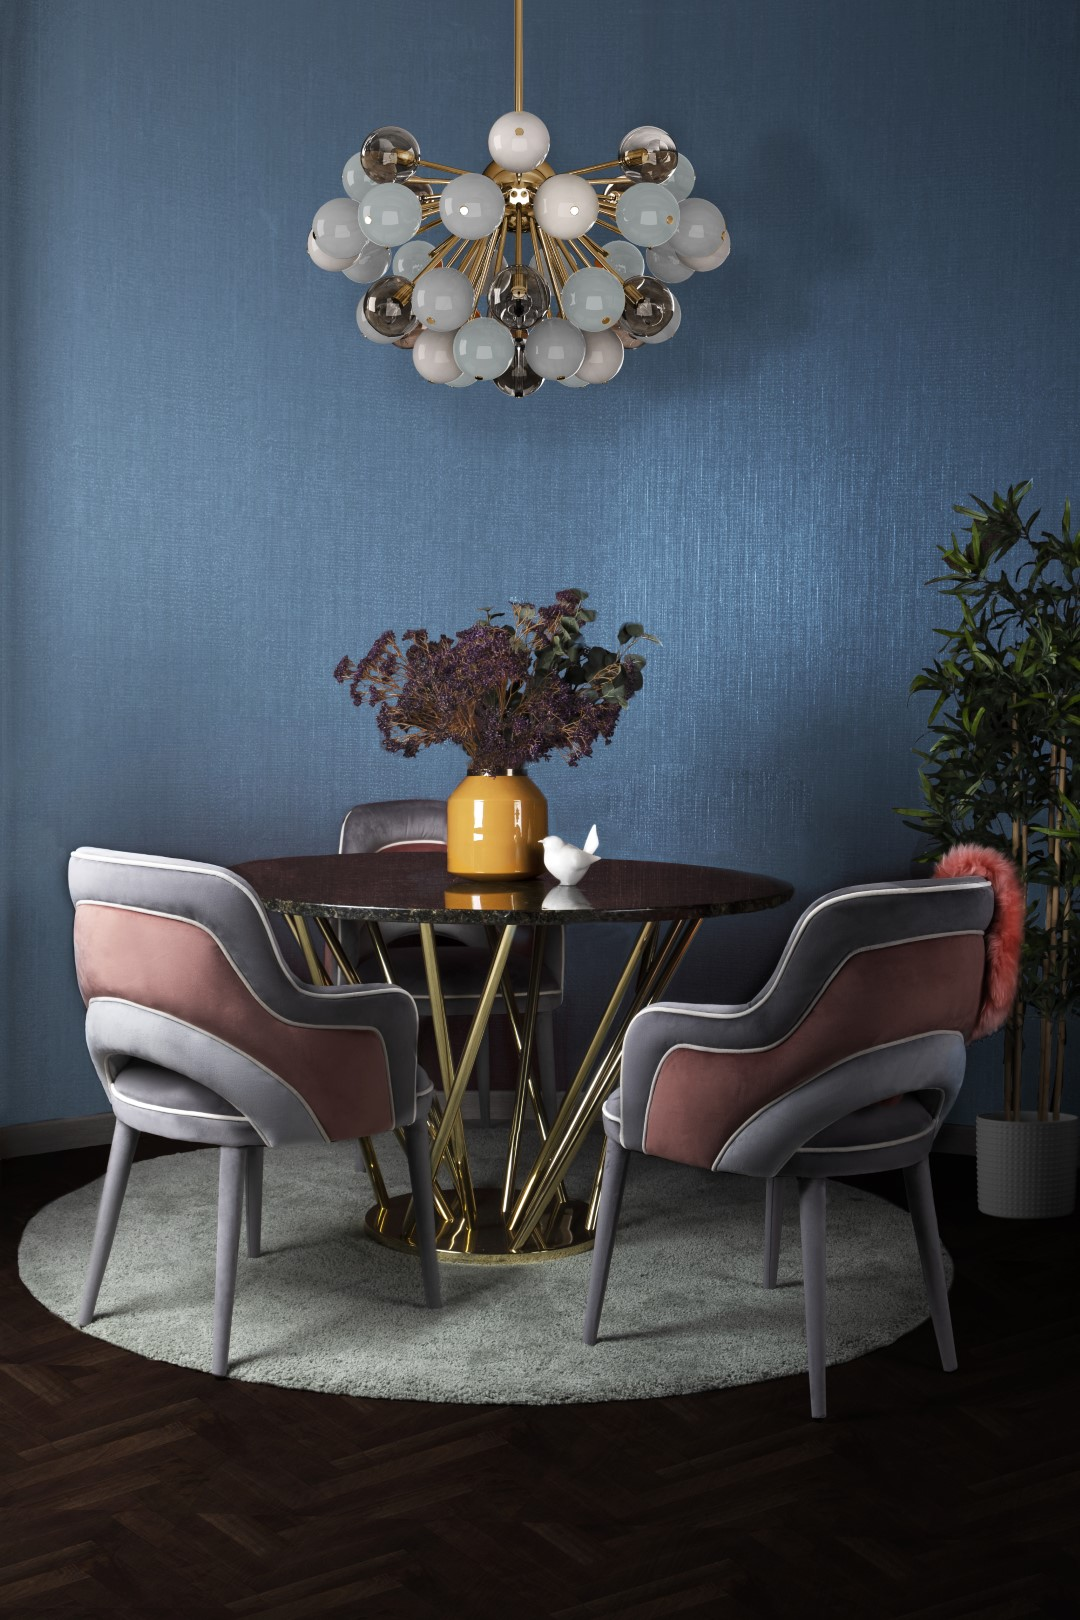 Ottiu's Charisse Dining Chair, Neula dining table by Malabar and Berries Suspension Lamp by Creativemary